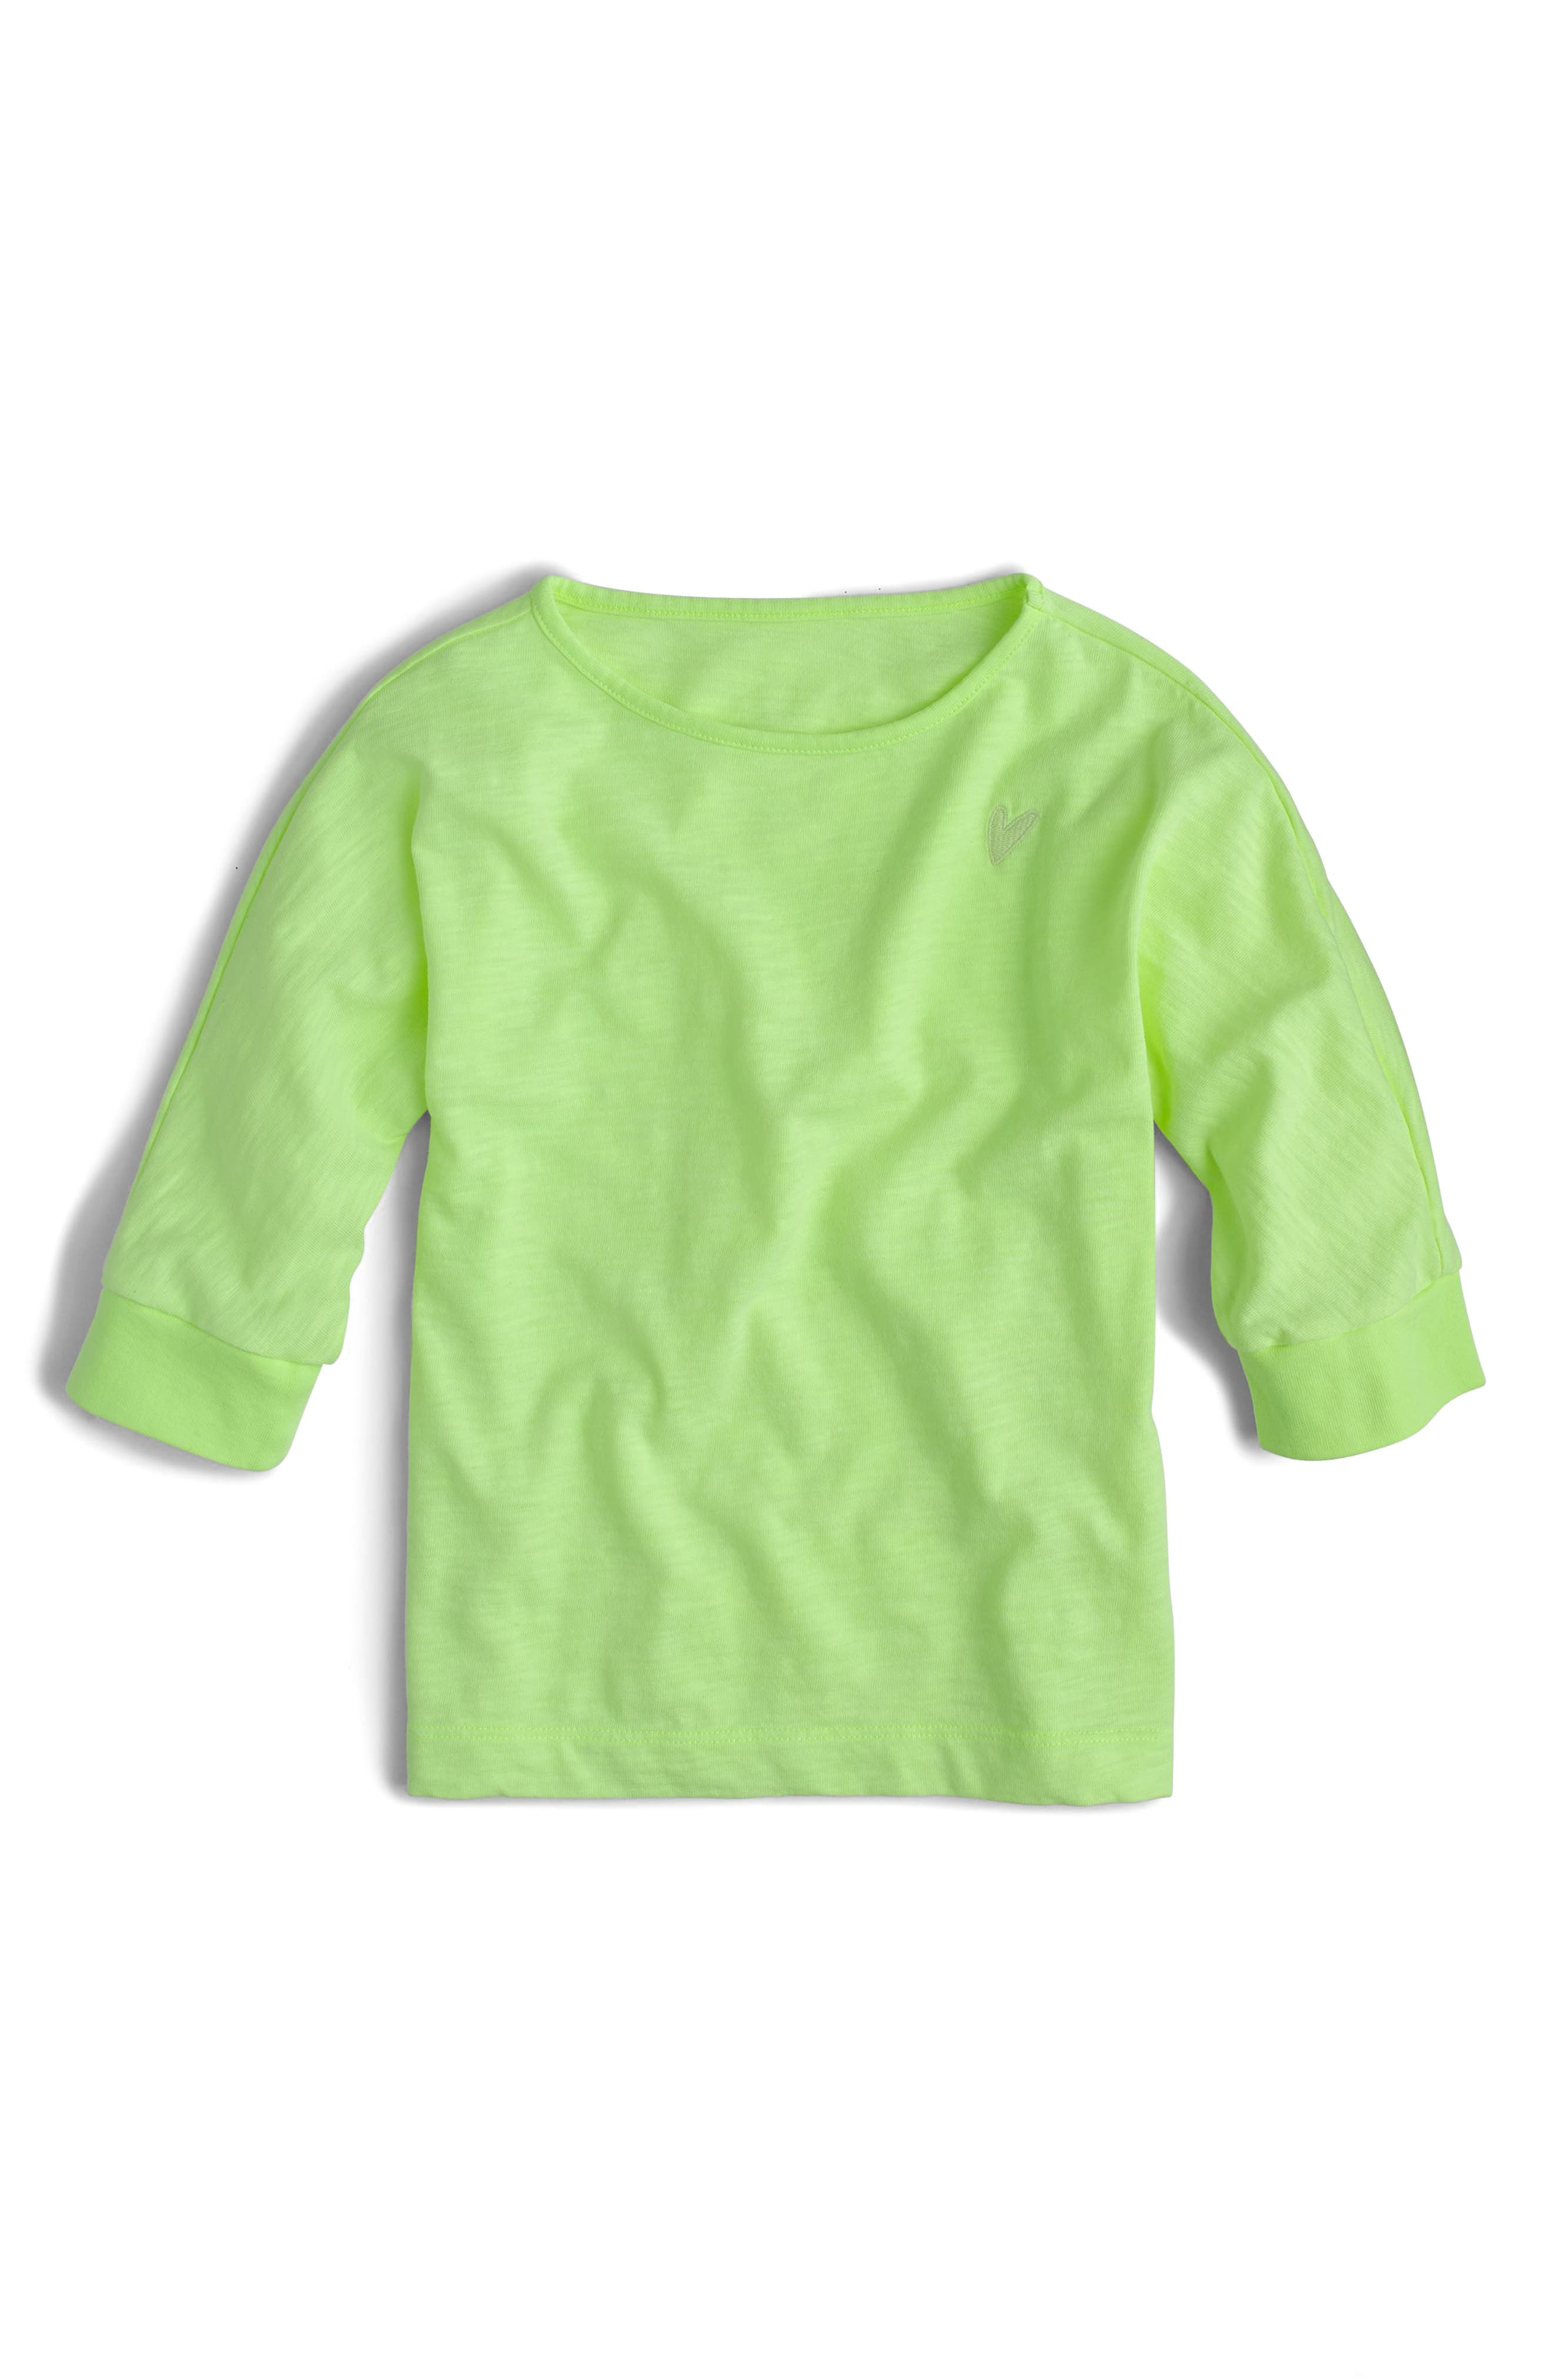 Alternate Image 1 Selected - crewcuts by J.Crew Heart Appliqué Tee (Toddler Girls, Little Girls & Big Girls)